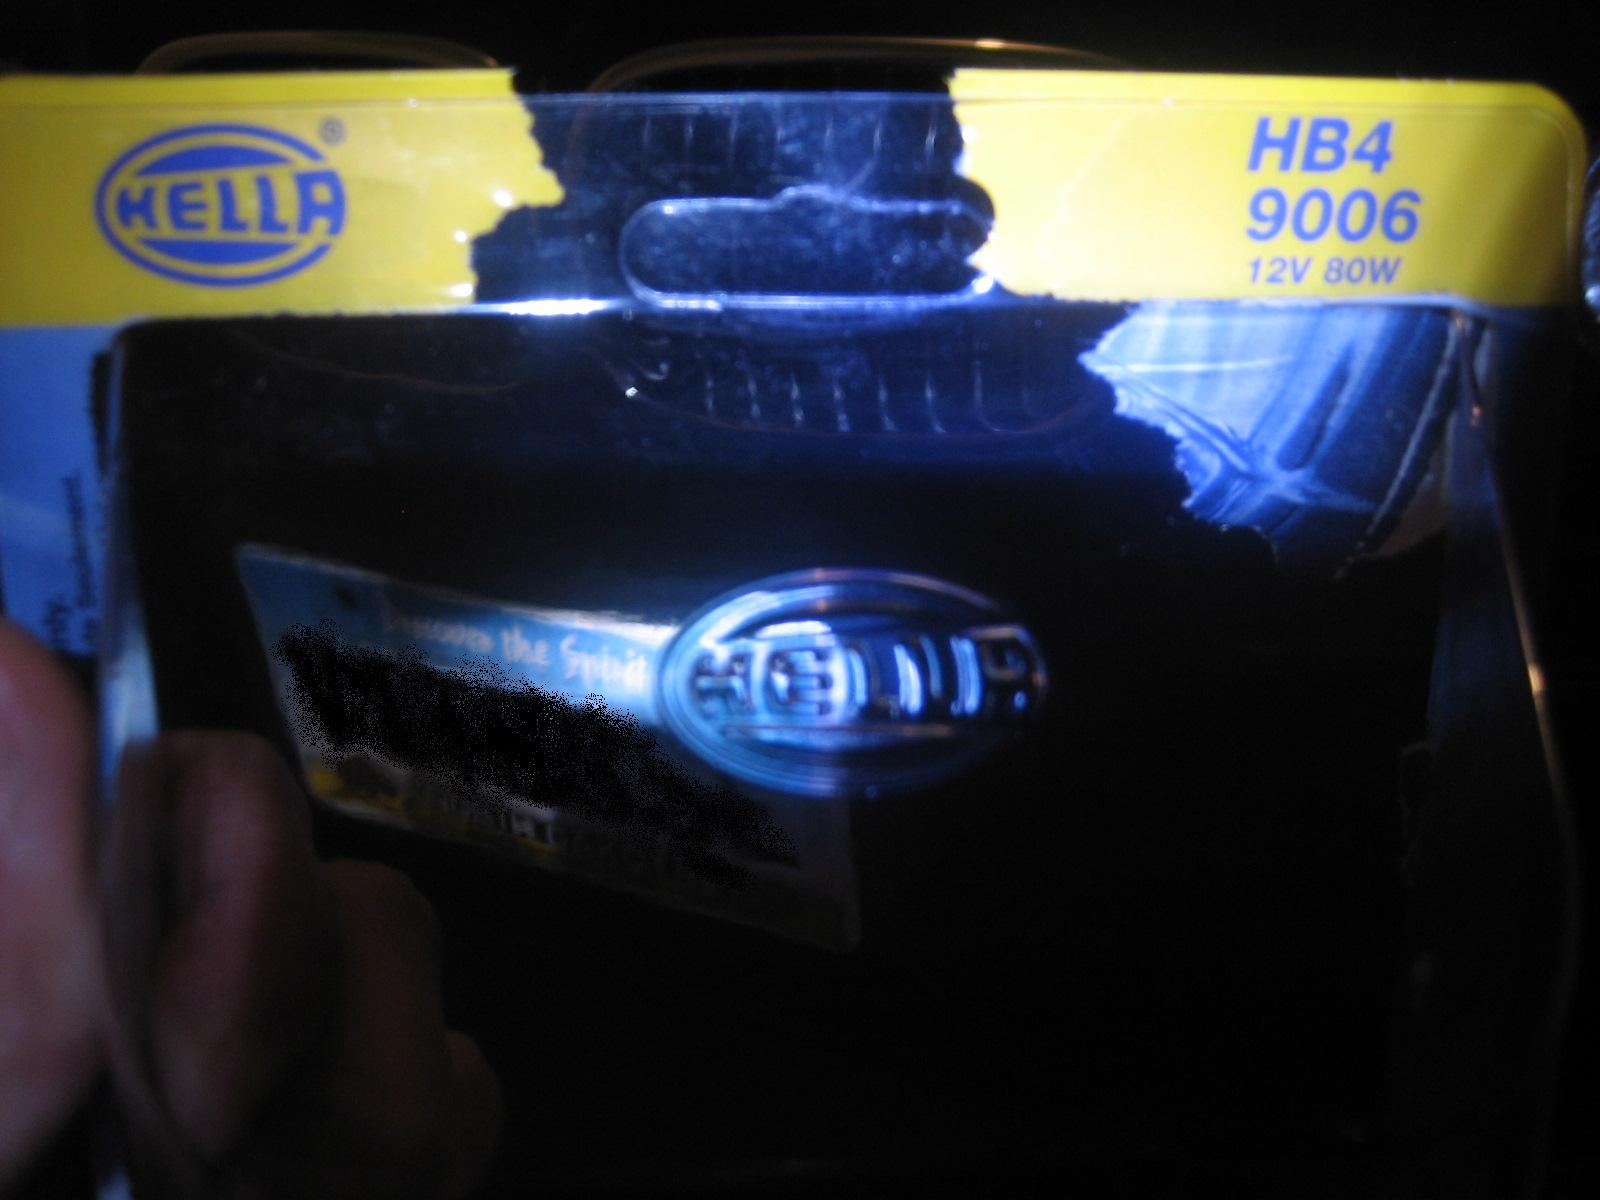 Fog Light Bulb Replacement for E39 M5 w/ Pics-fog-lightss.jpg